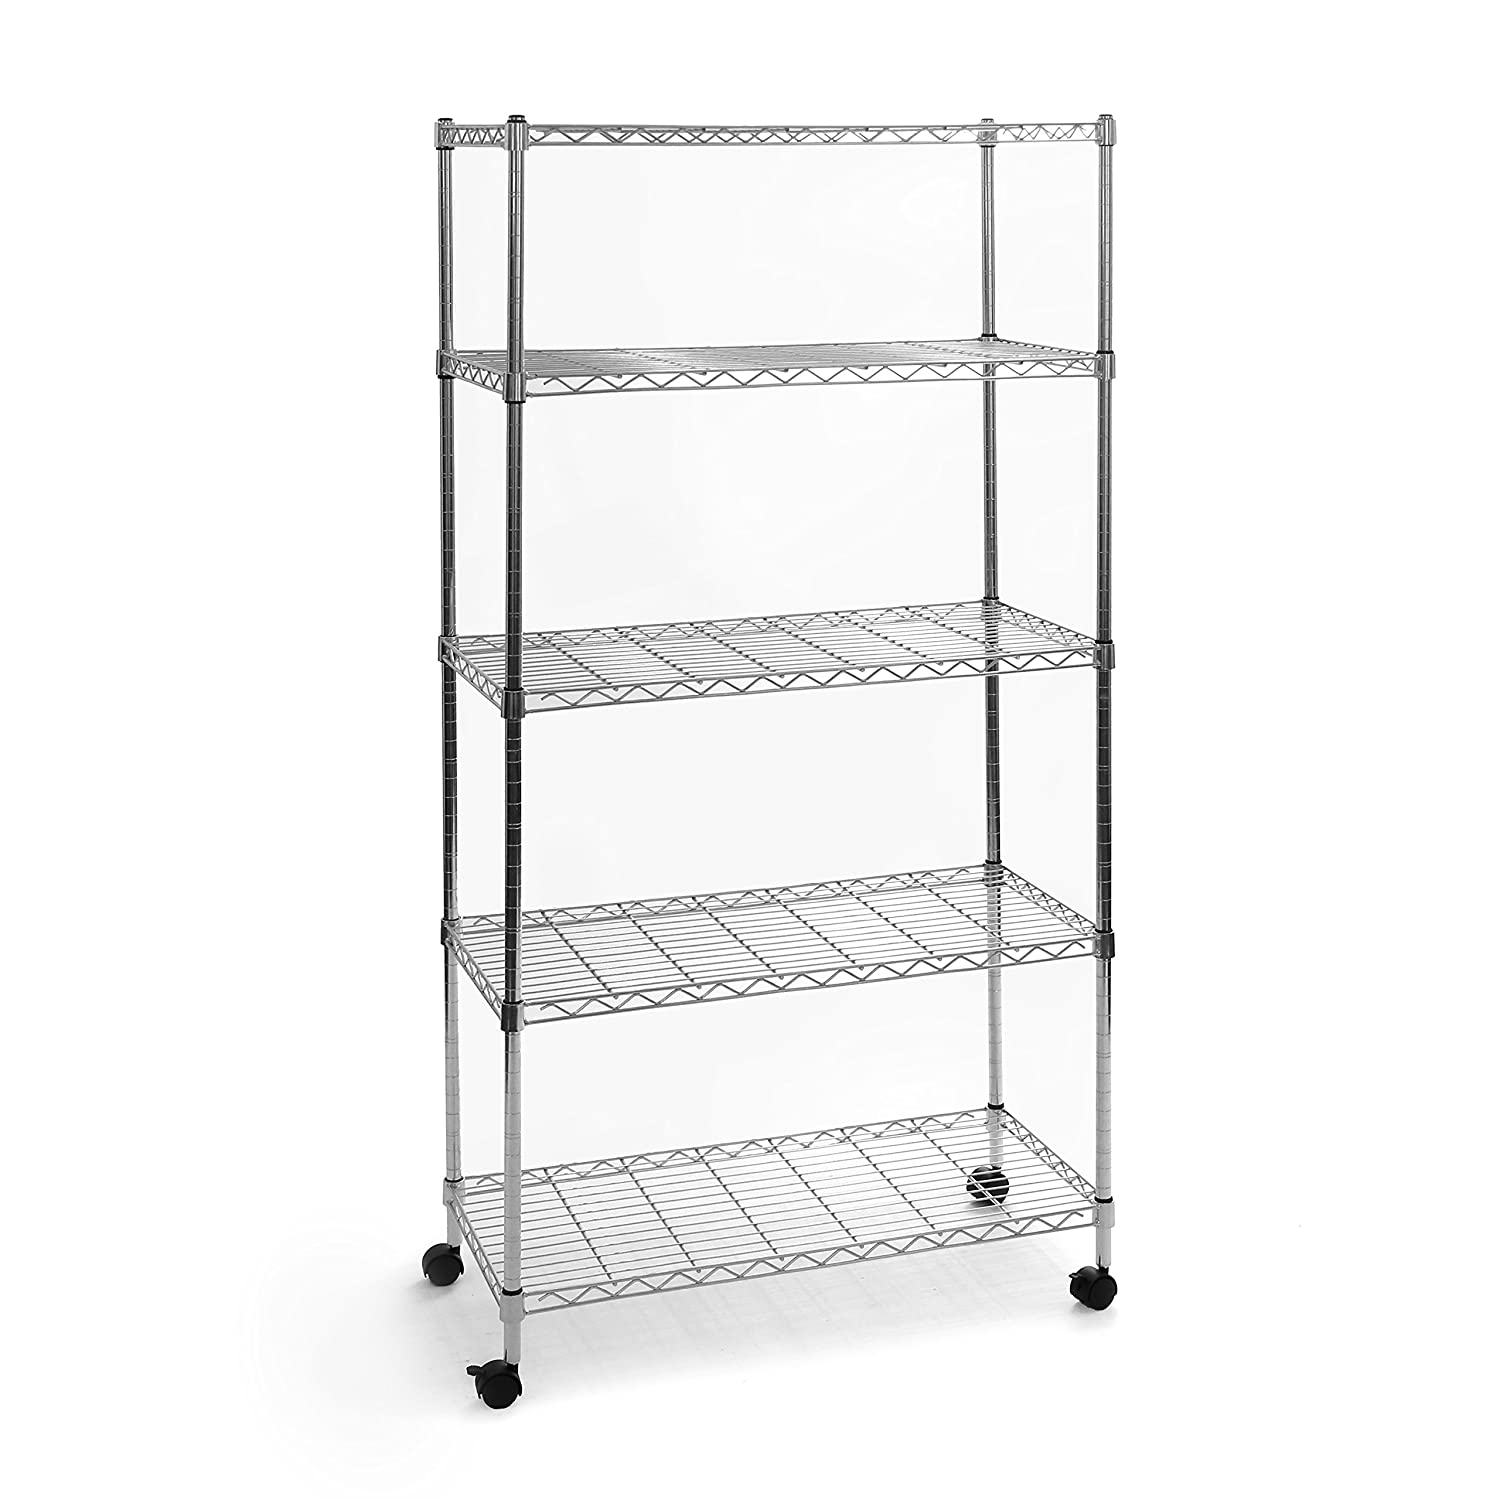 steel rack shelves 5 tier adjustable shelf storage roller. Black Bedroom Furniture Sets. Home Design Ideas